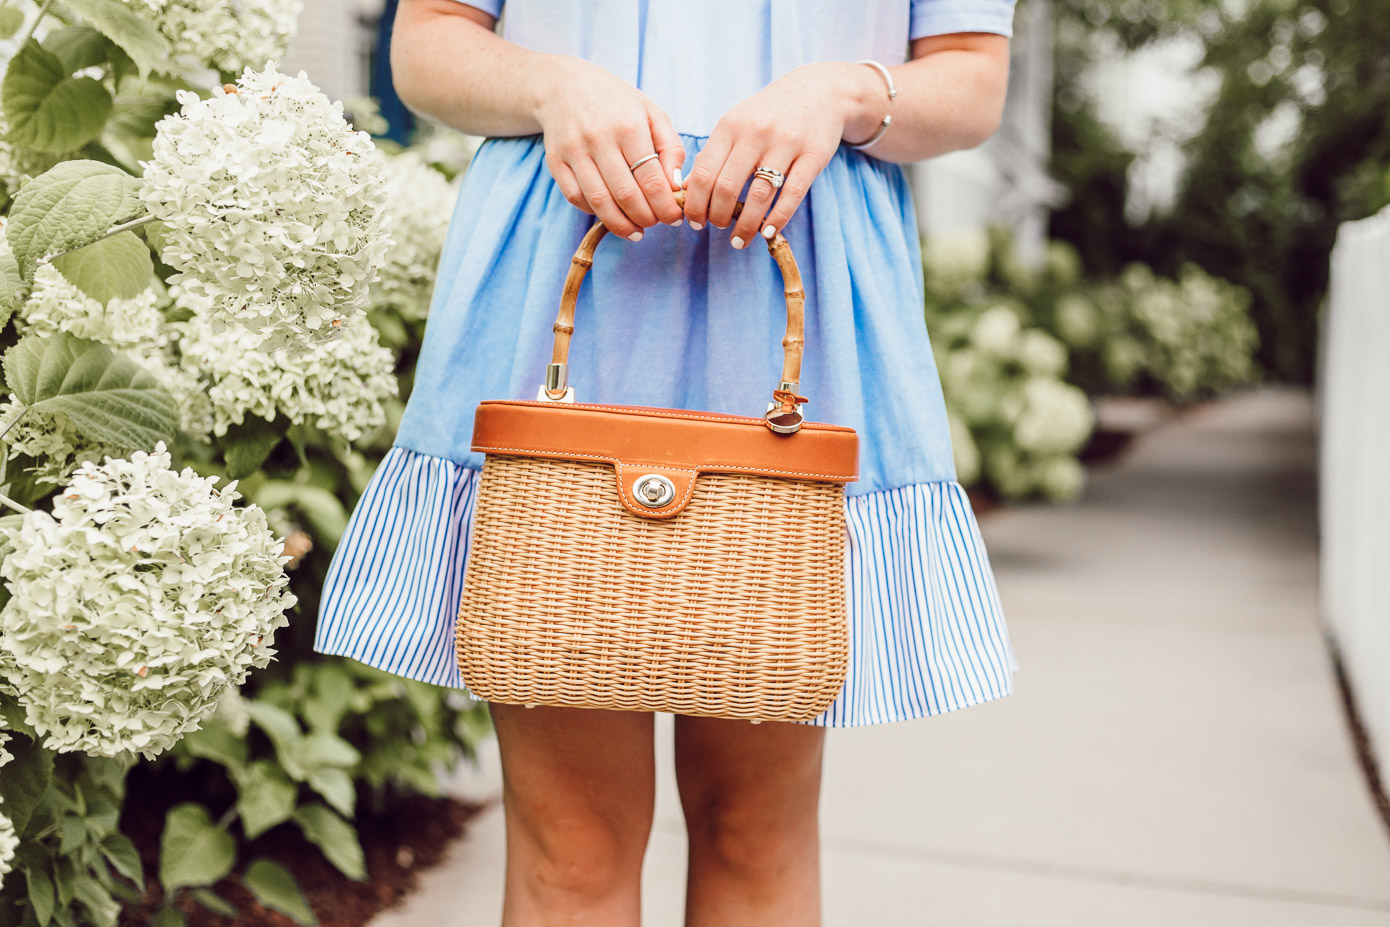 English Factory Summer Dress in Charlotte, NC // Blue and White Dress for Summer, Structured Basket Bag | Louella Reese